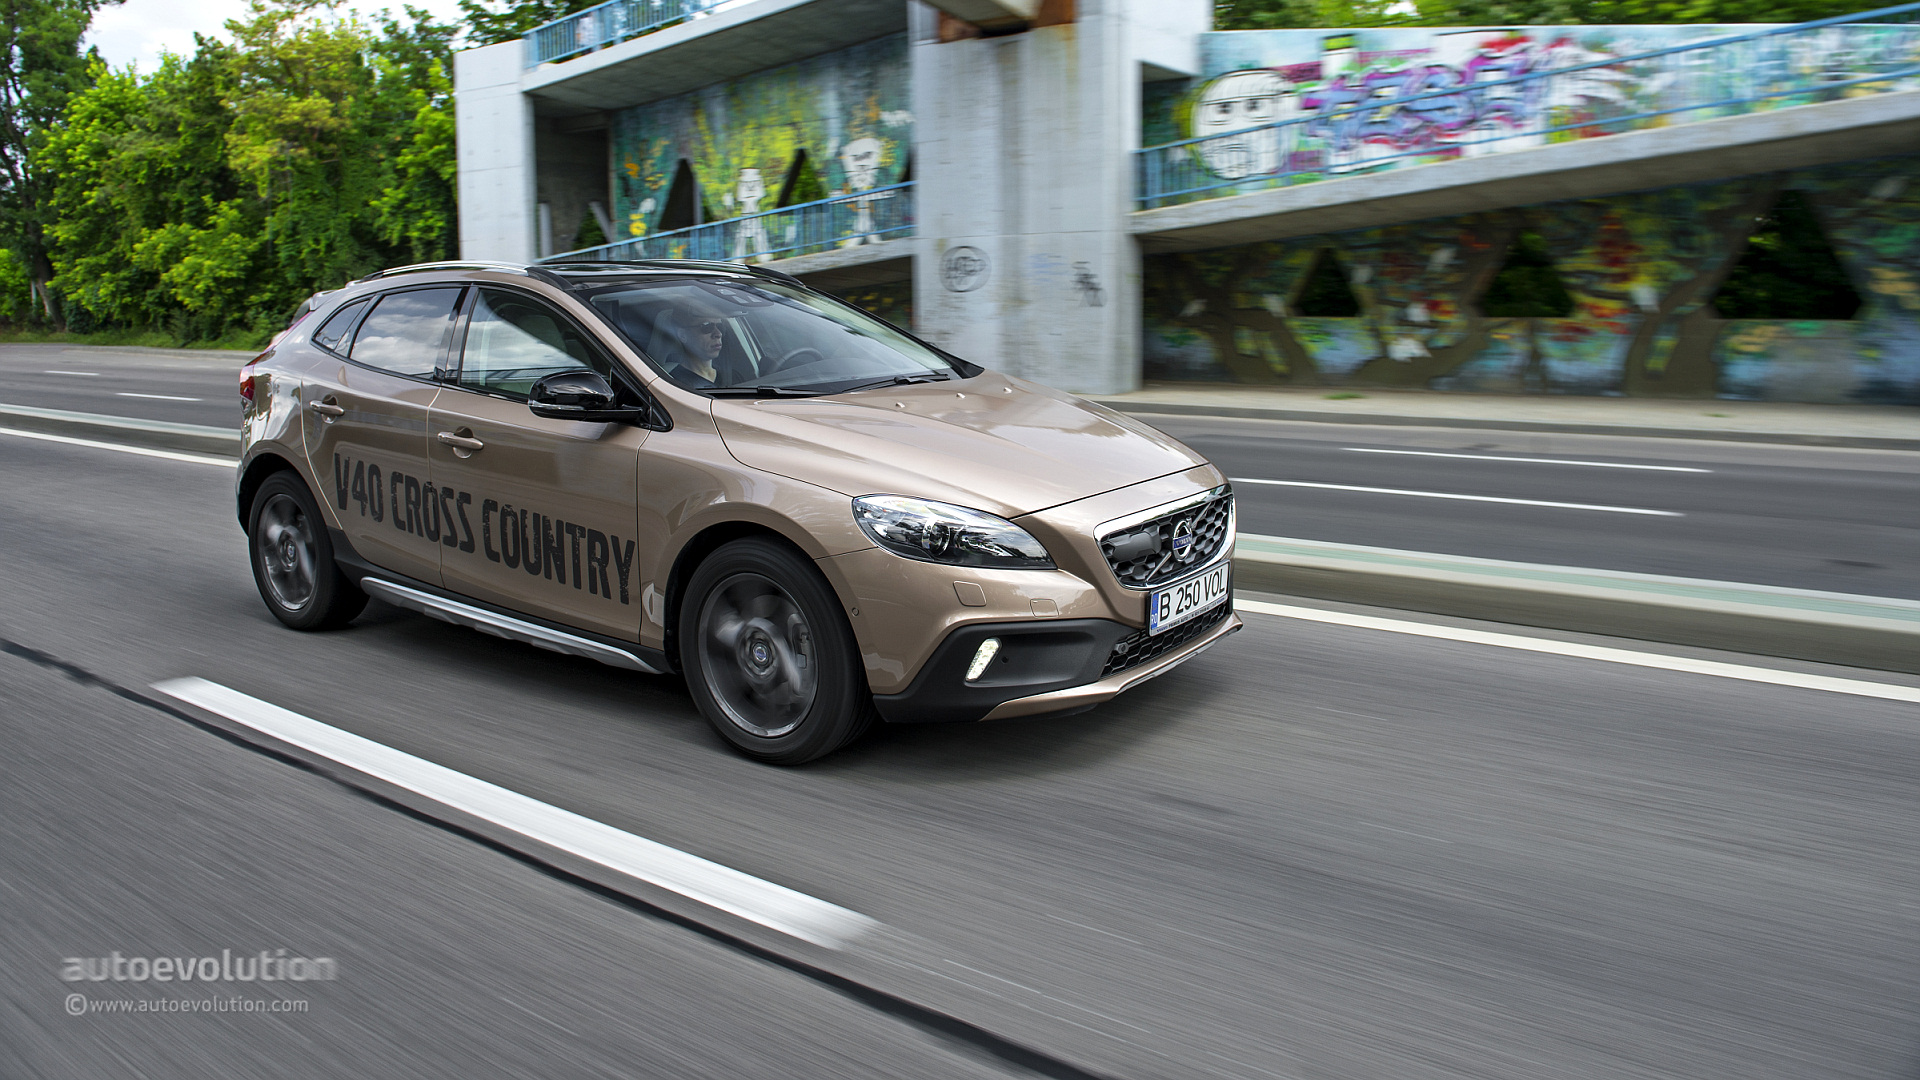 volvo v40 cross country goes on sale in australia autoevolution. Black Bedroom Furniture Sets. Home Design Ideas